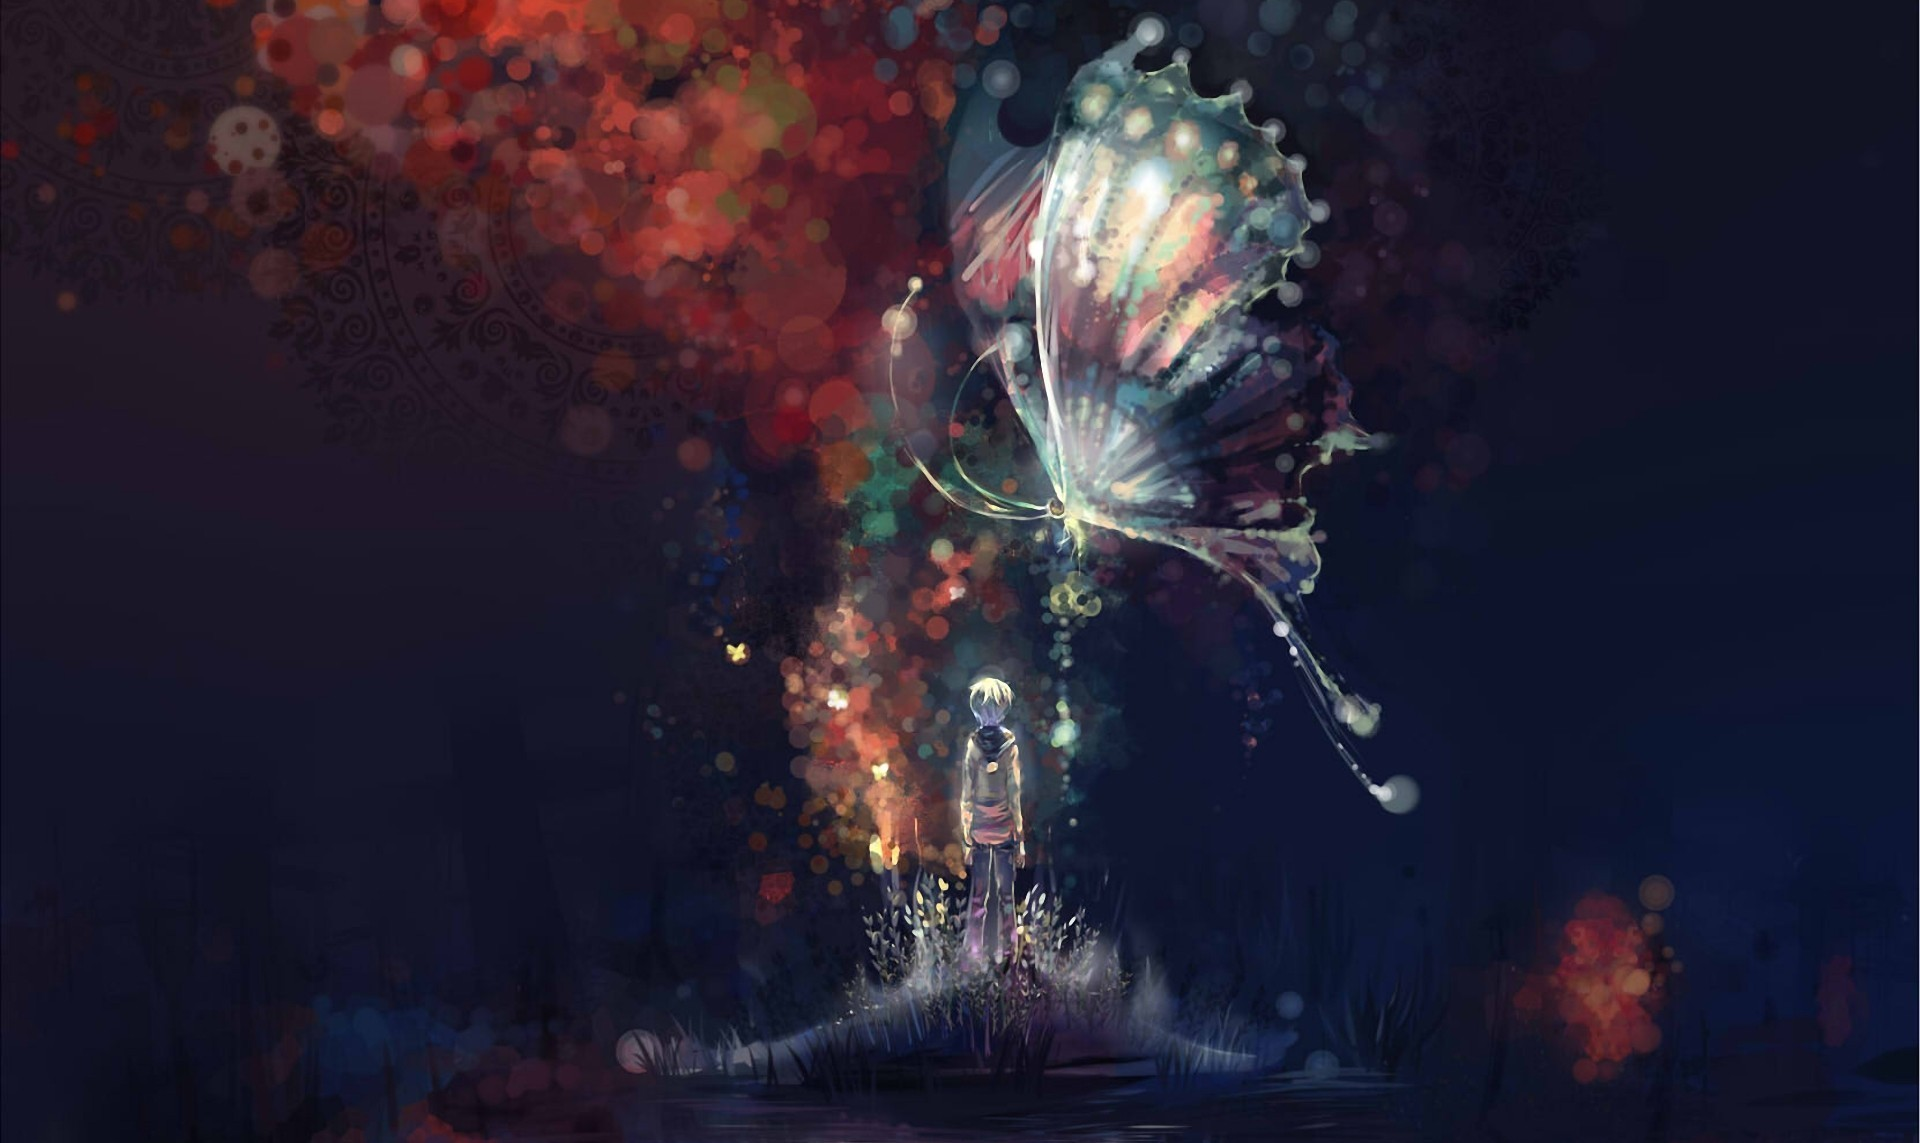 Res: 1920x1143, art, Night, Abstract, Butterfly, Boy, Island, Water, Lake, Anime, Original  Wallpapers HD / Desktop and Mobile Backgrounds